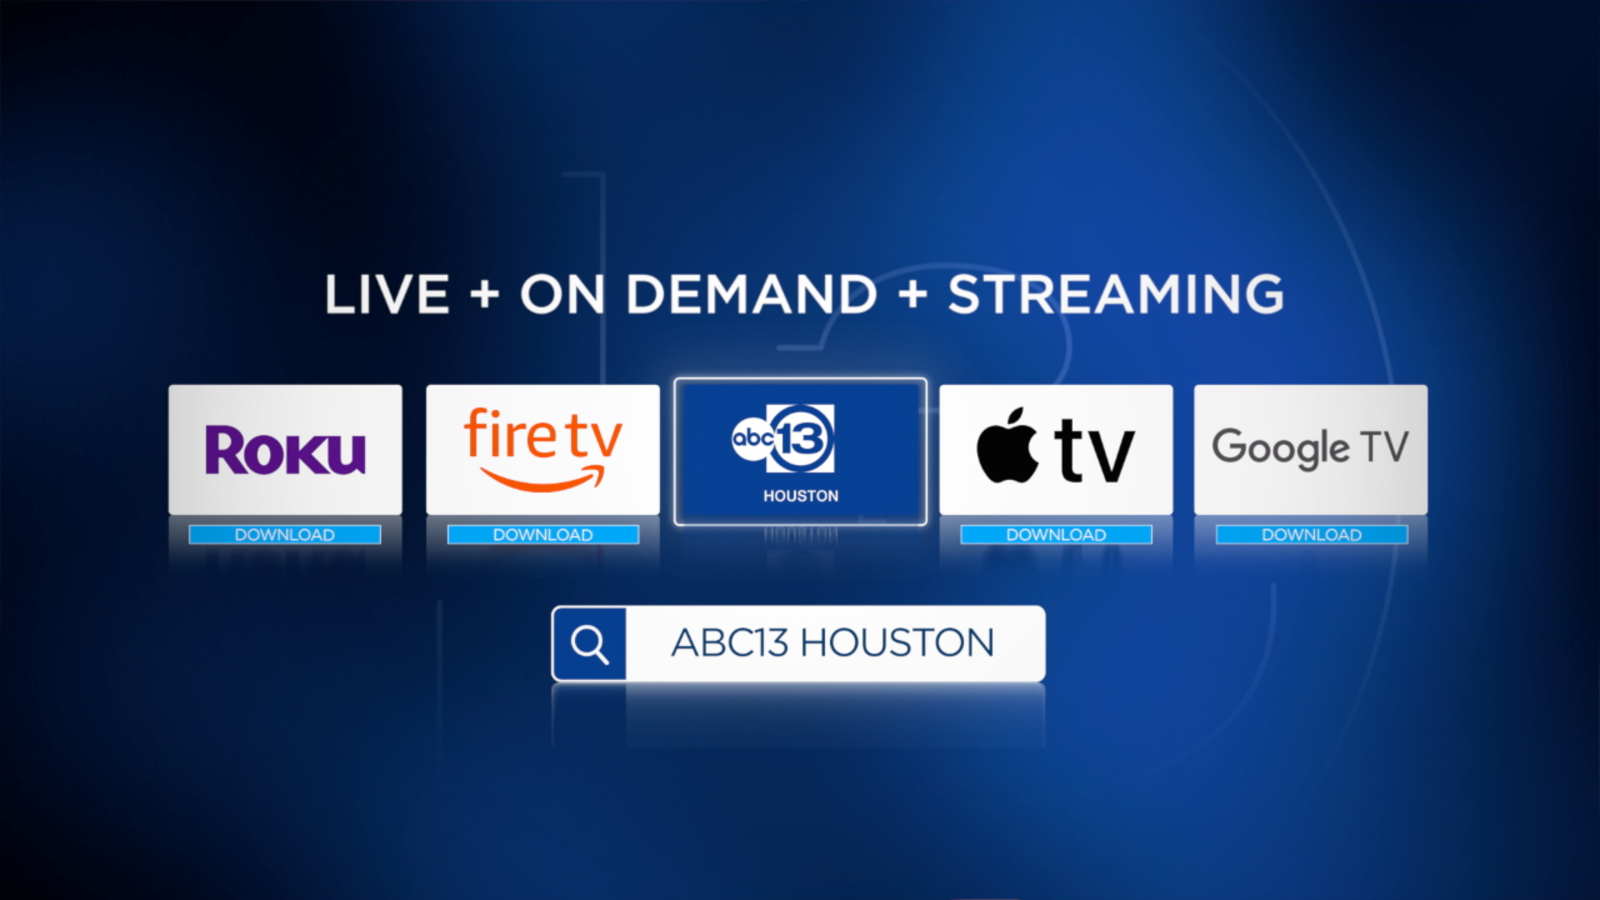 Here's how to watch ABC13's breaking news and weather on your streaming device